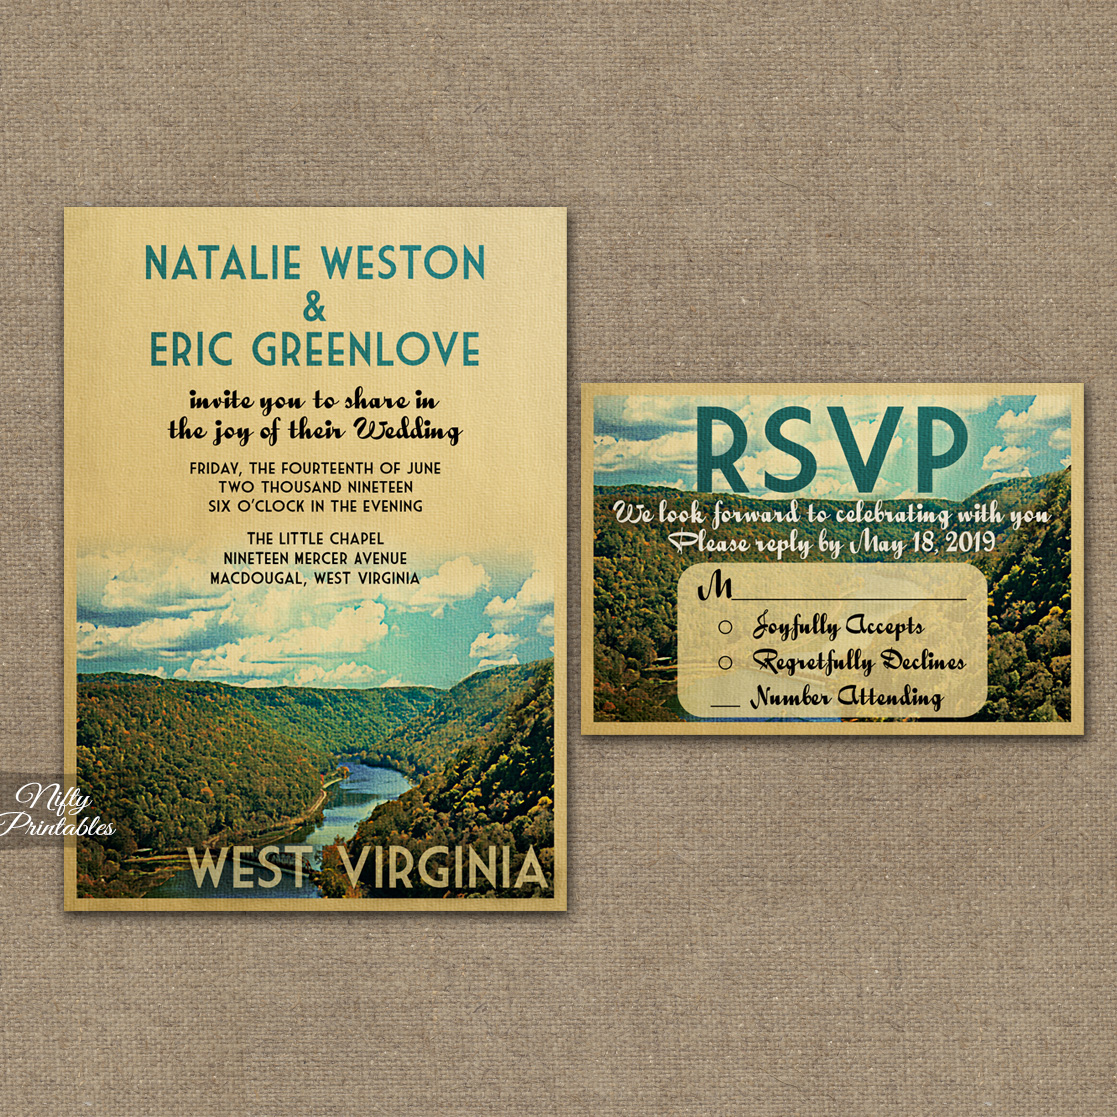 West Virginia Wedding Invitations VTW